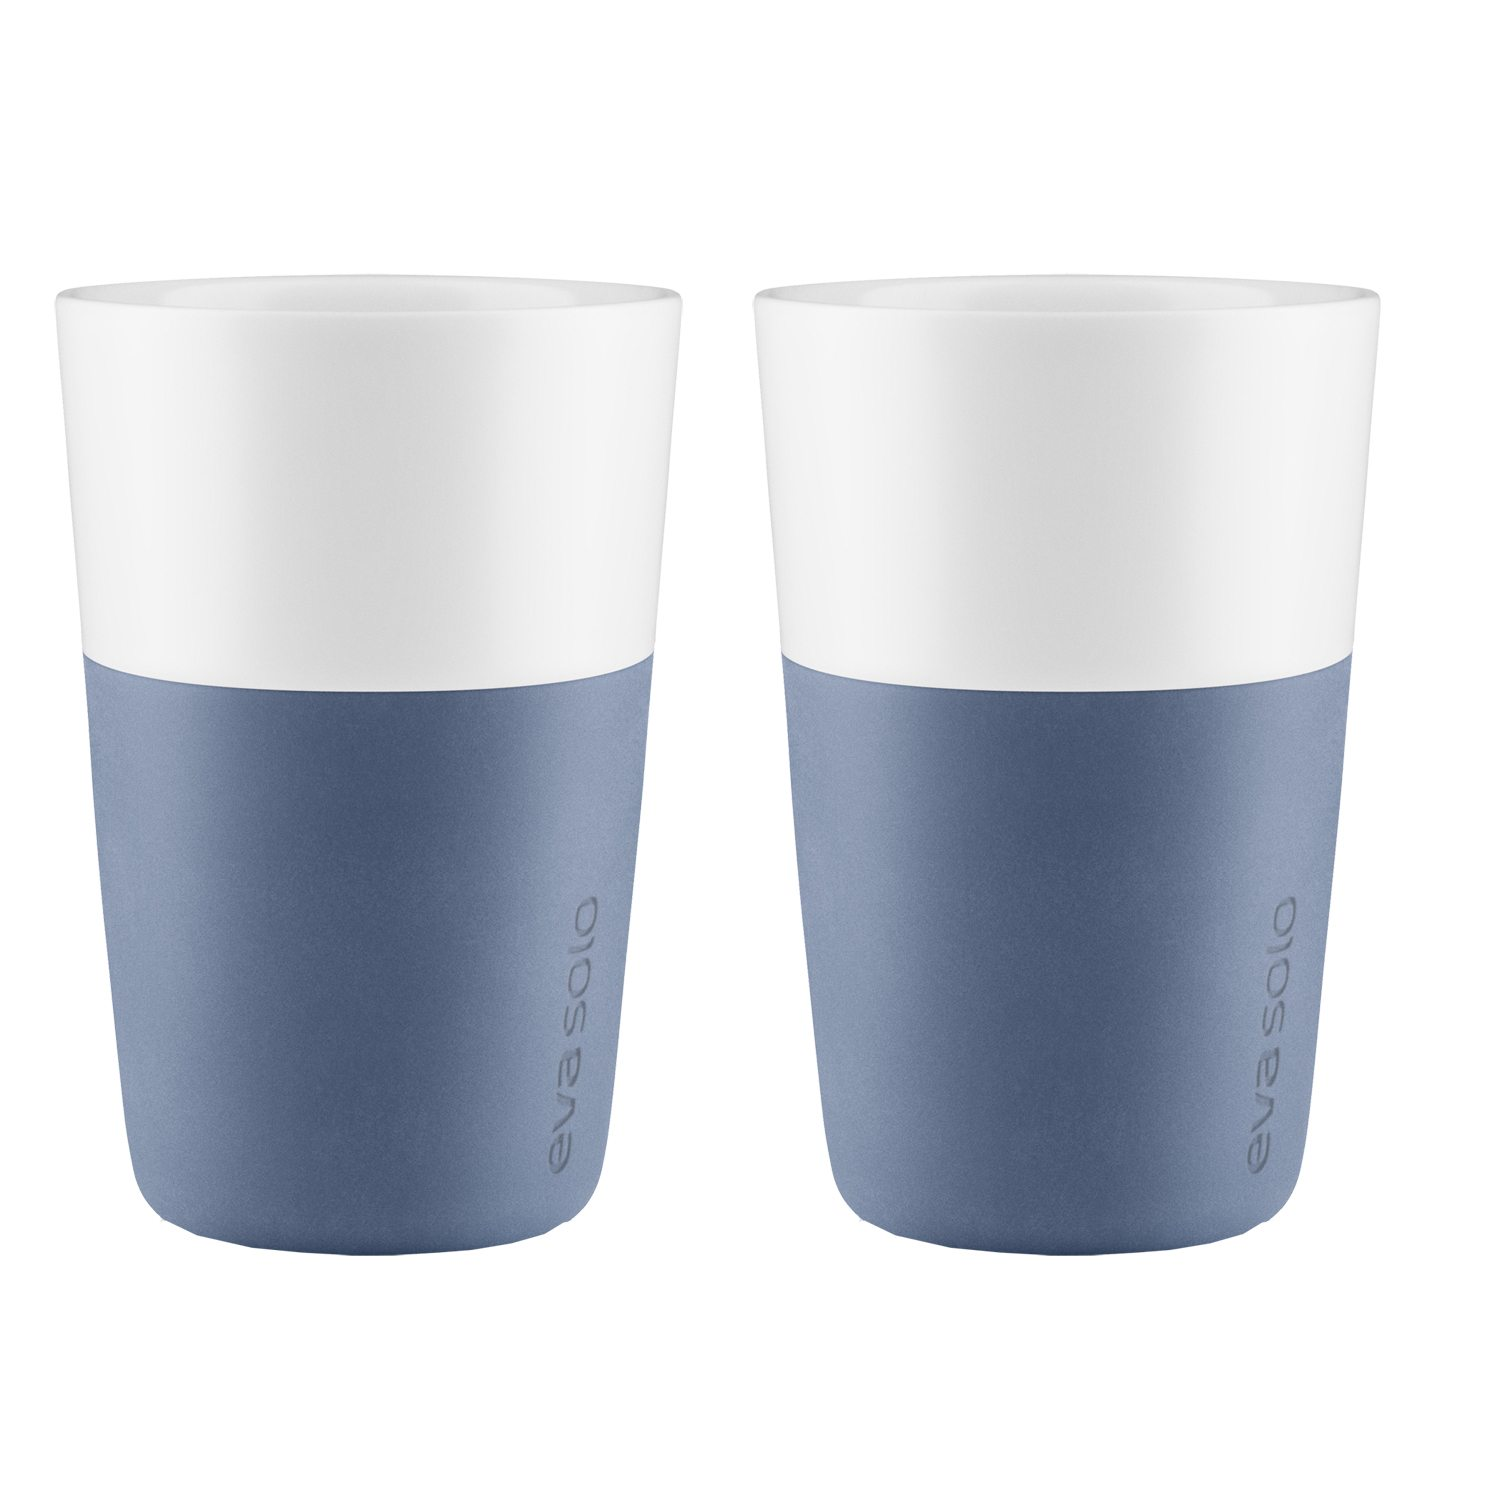 Caffe Latte mugg 2-pack, moonlight blå